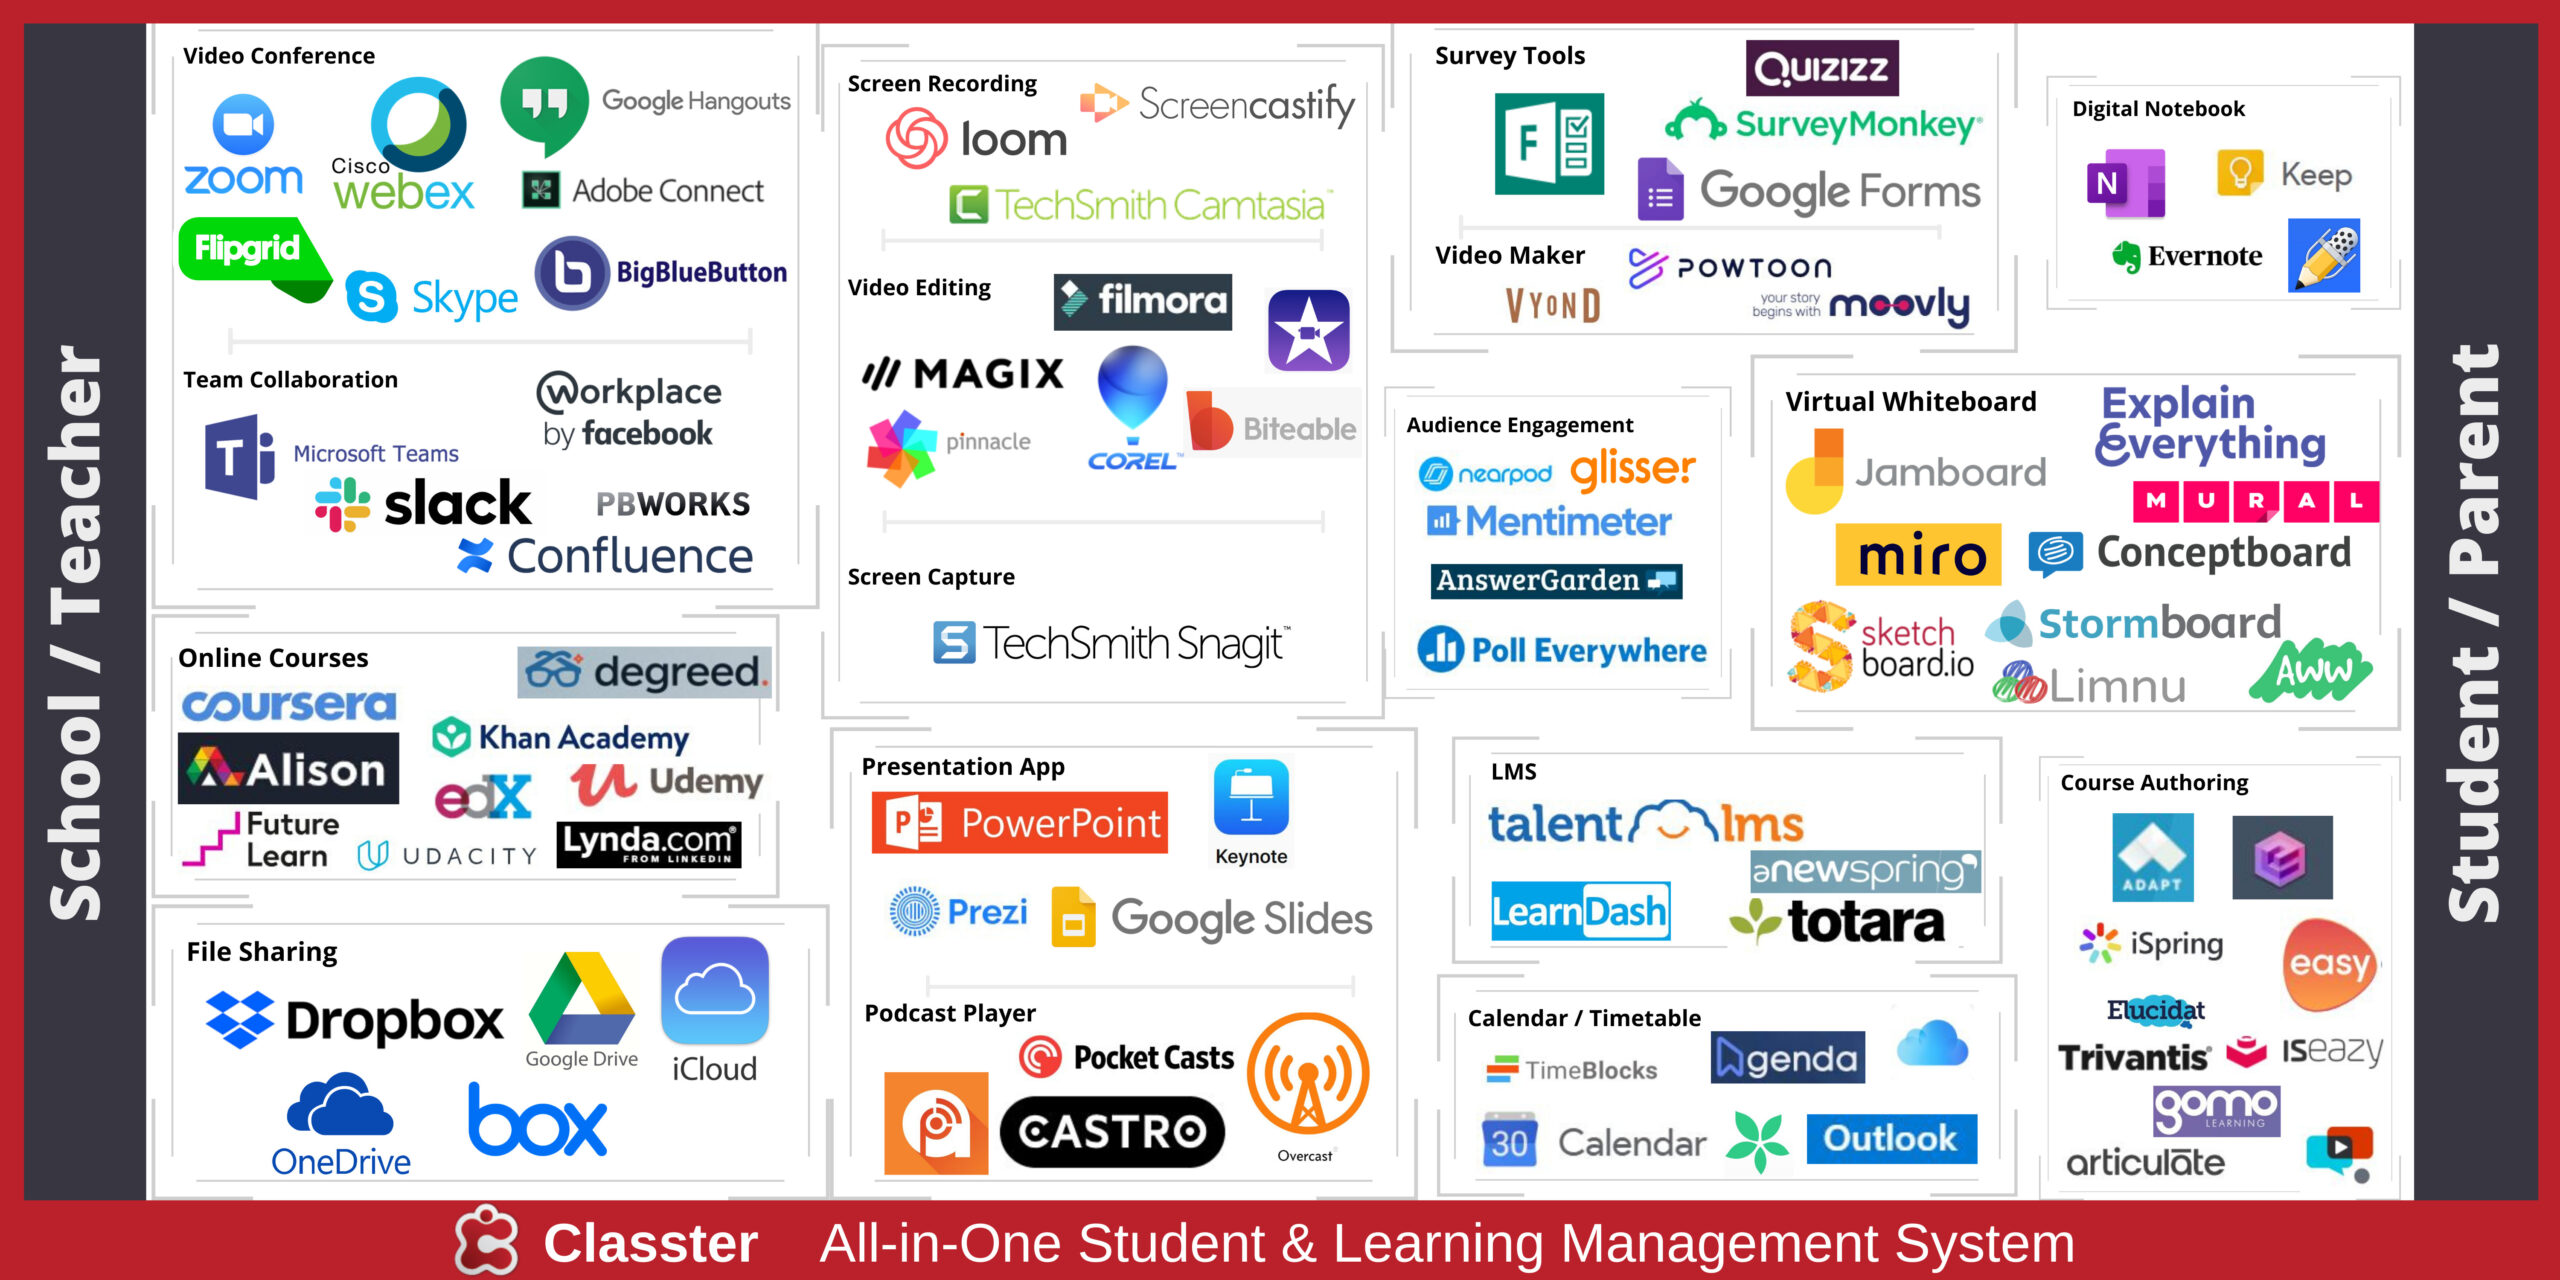 20 Tools for Creating the Digital Classroom   Classter   All in ...